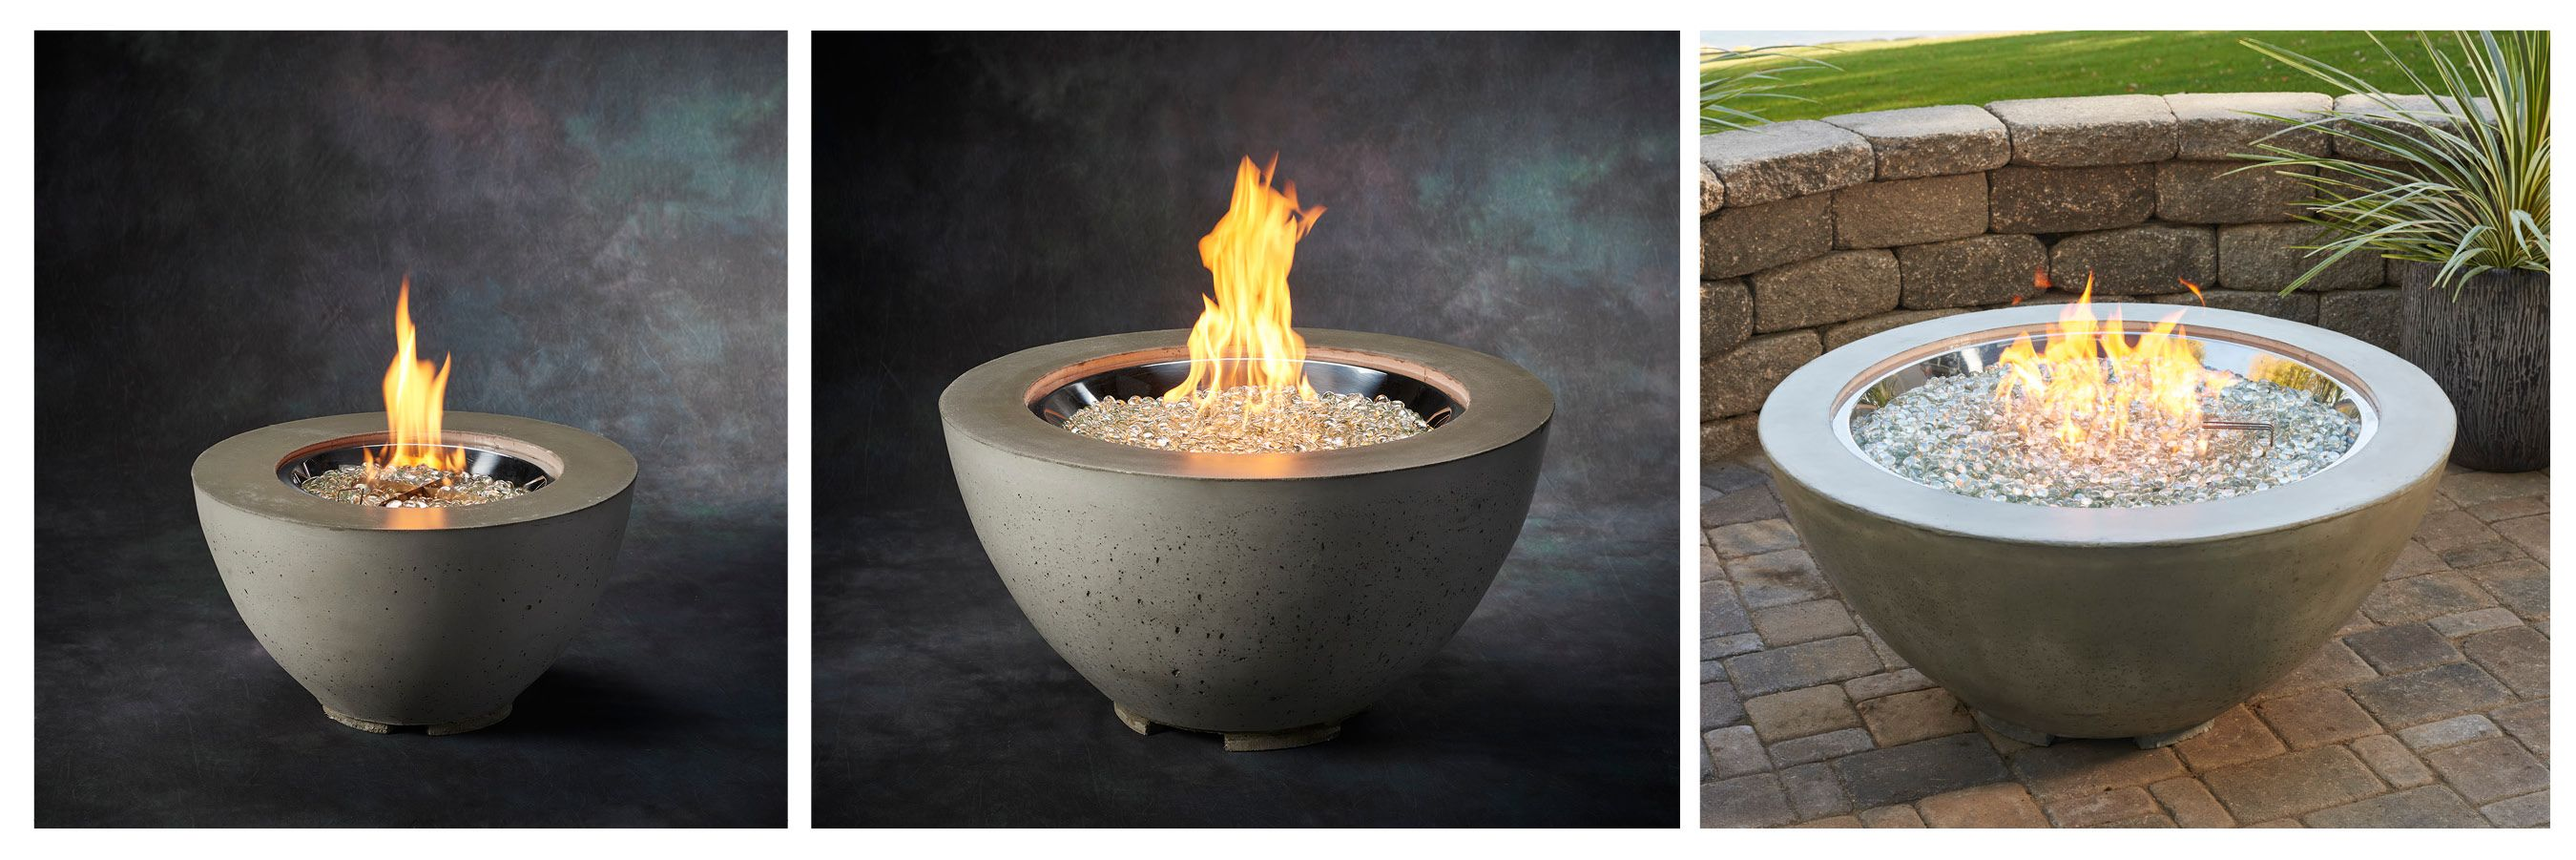 three sizes of fire pit bowls to group together would look great